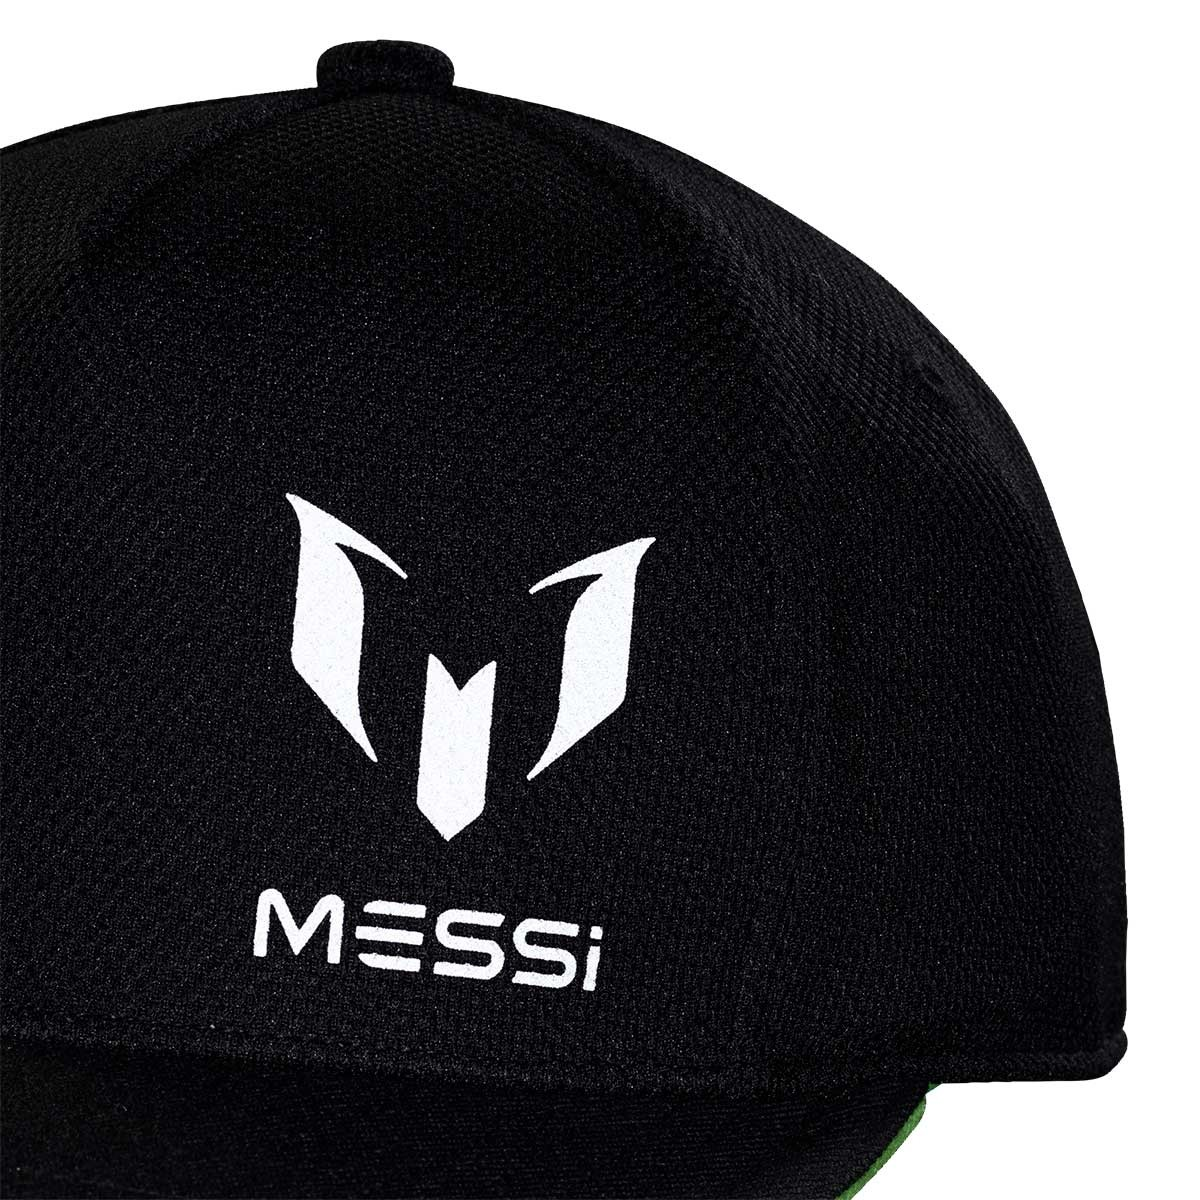 ffdc07cd9ec03 Cap adidas Kids Messi Black-Solar green - Tienda de fútbol Fútbol Emotion